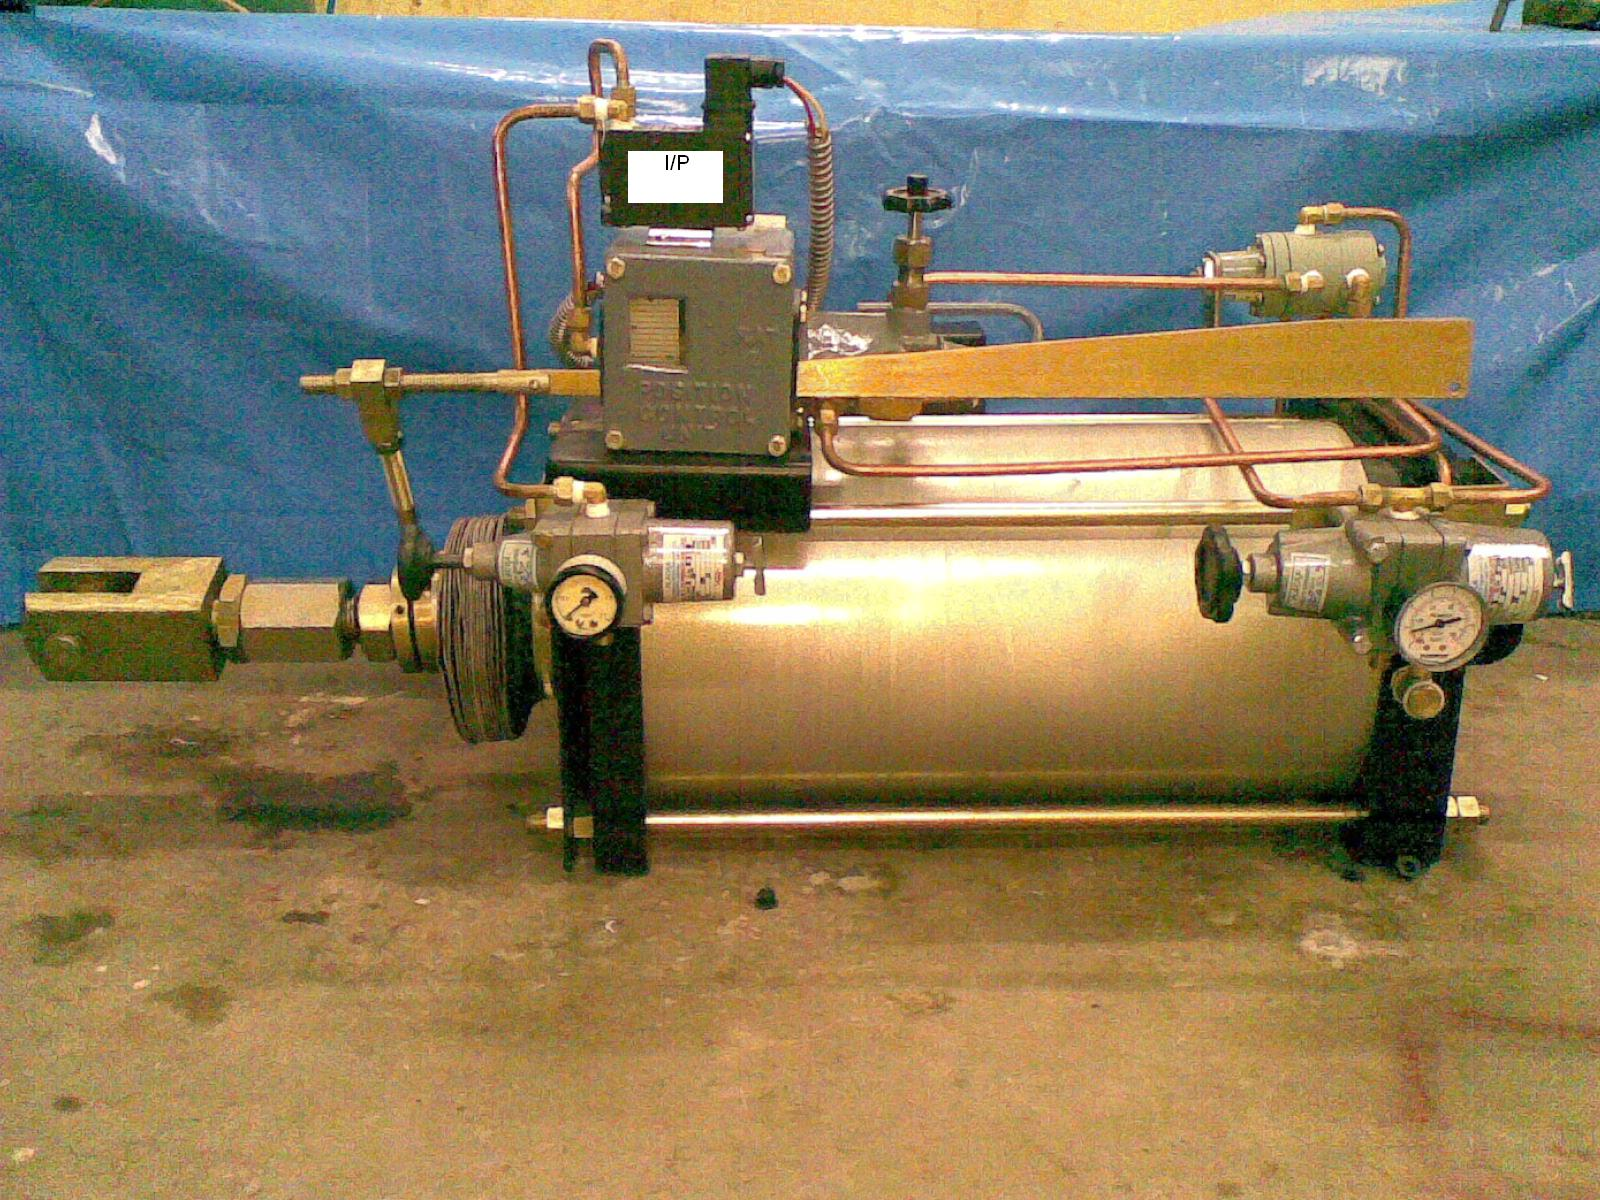 Pneumatic_Actuator_with_IP_and_PCU (1) 2